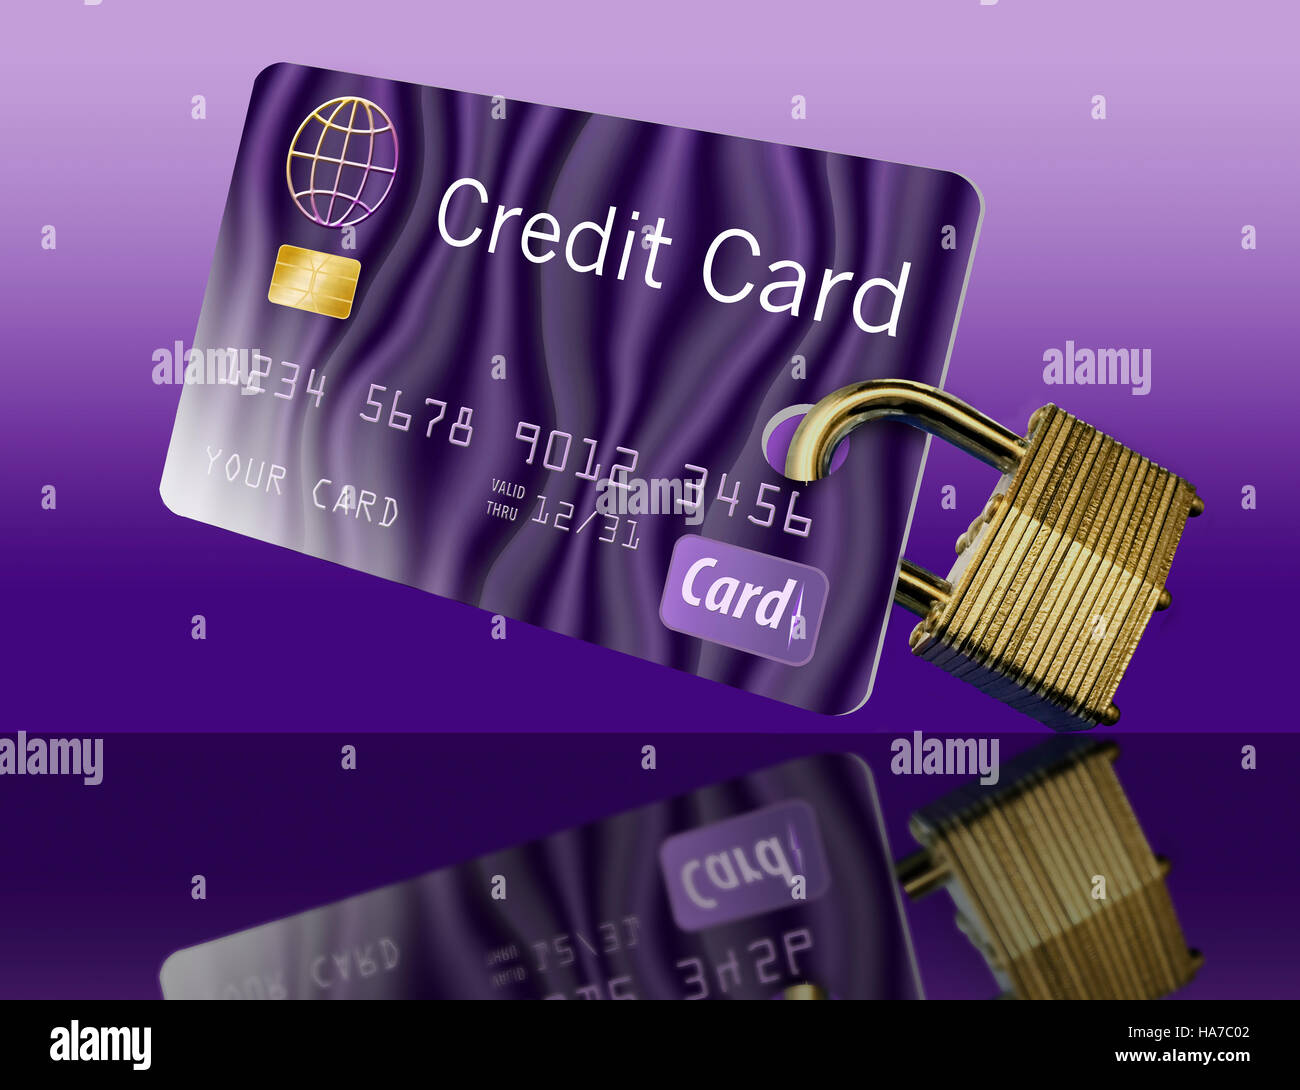 A credit card is seen with a padlock attached to support the theme of securing your credit card or using a secure - Stock Image